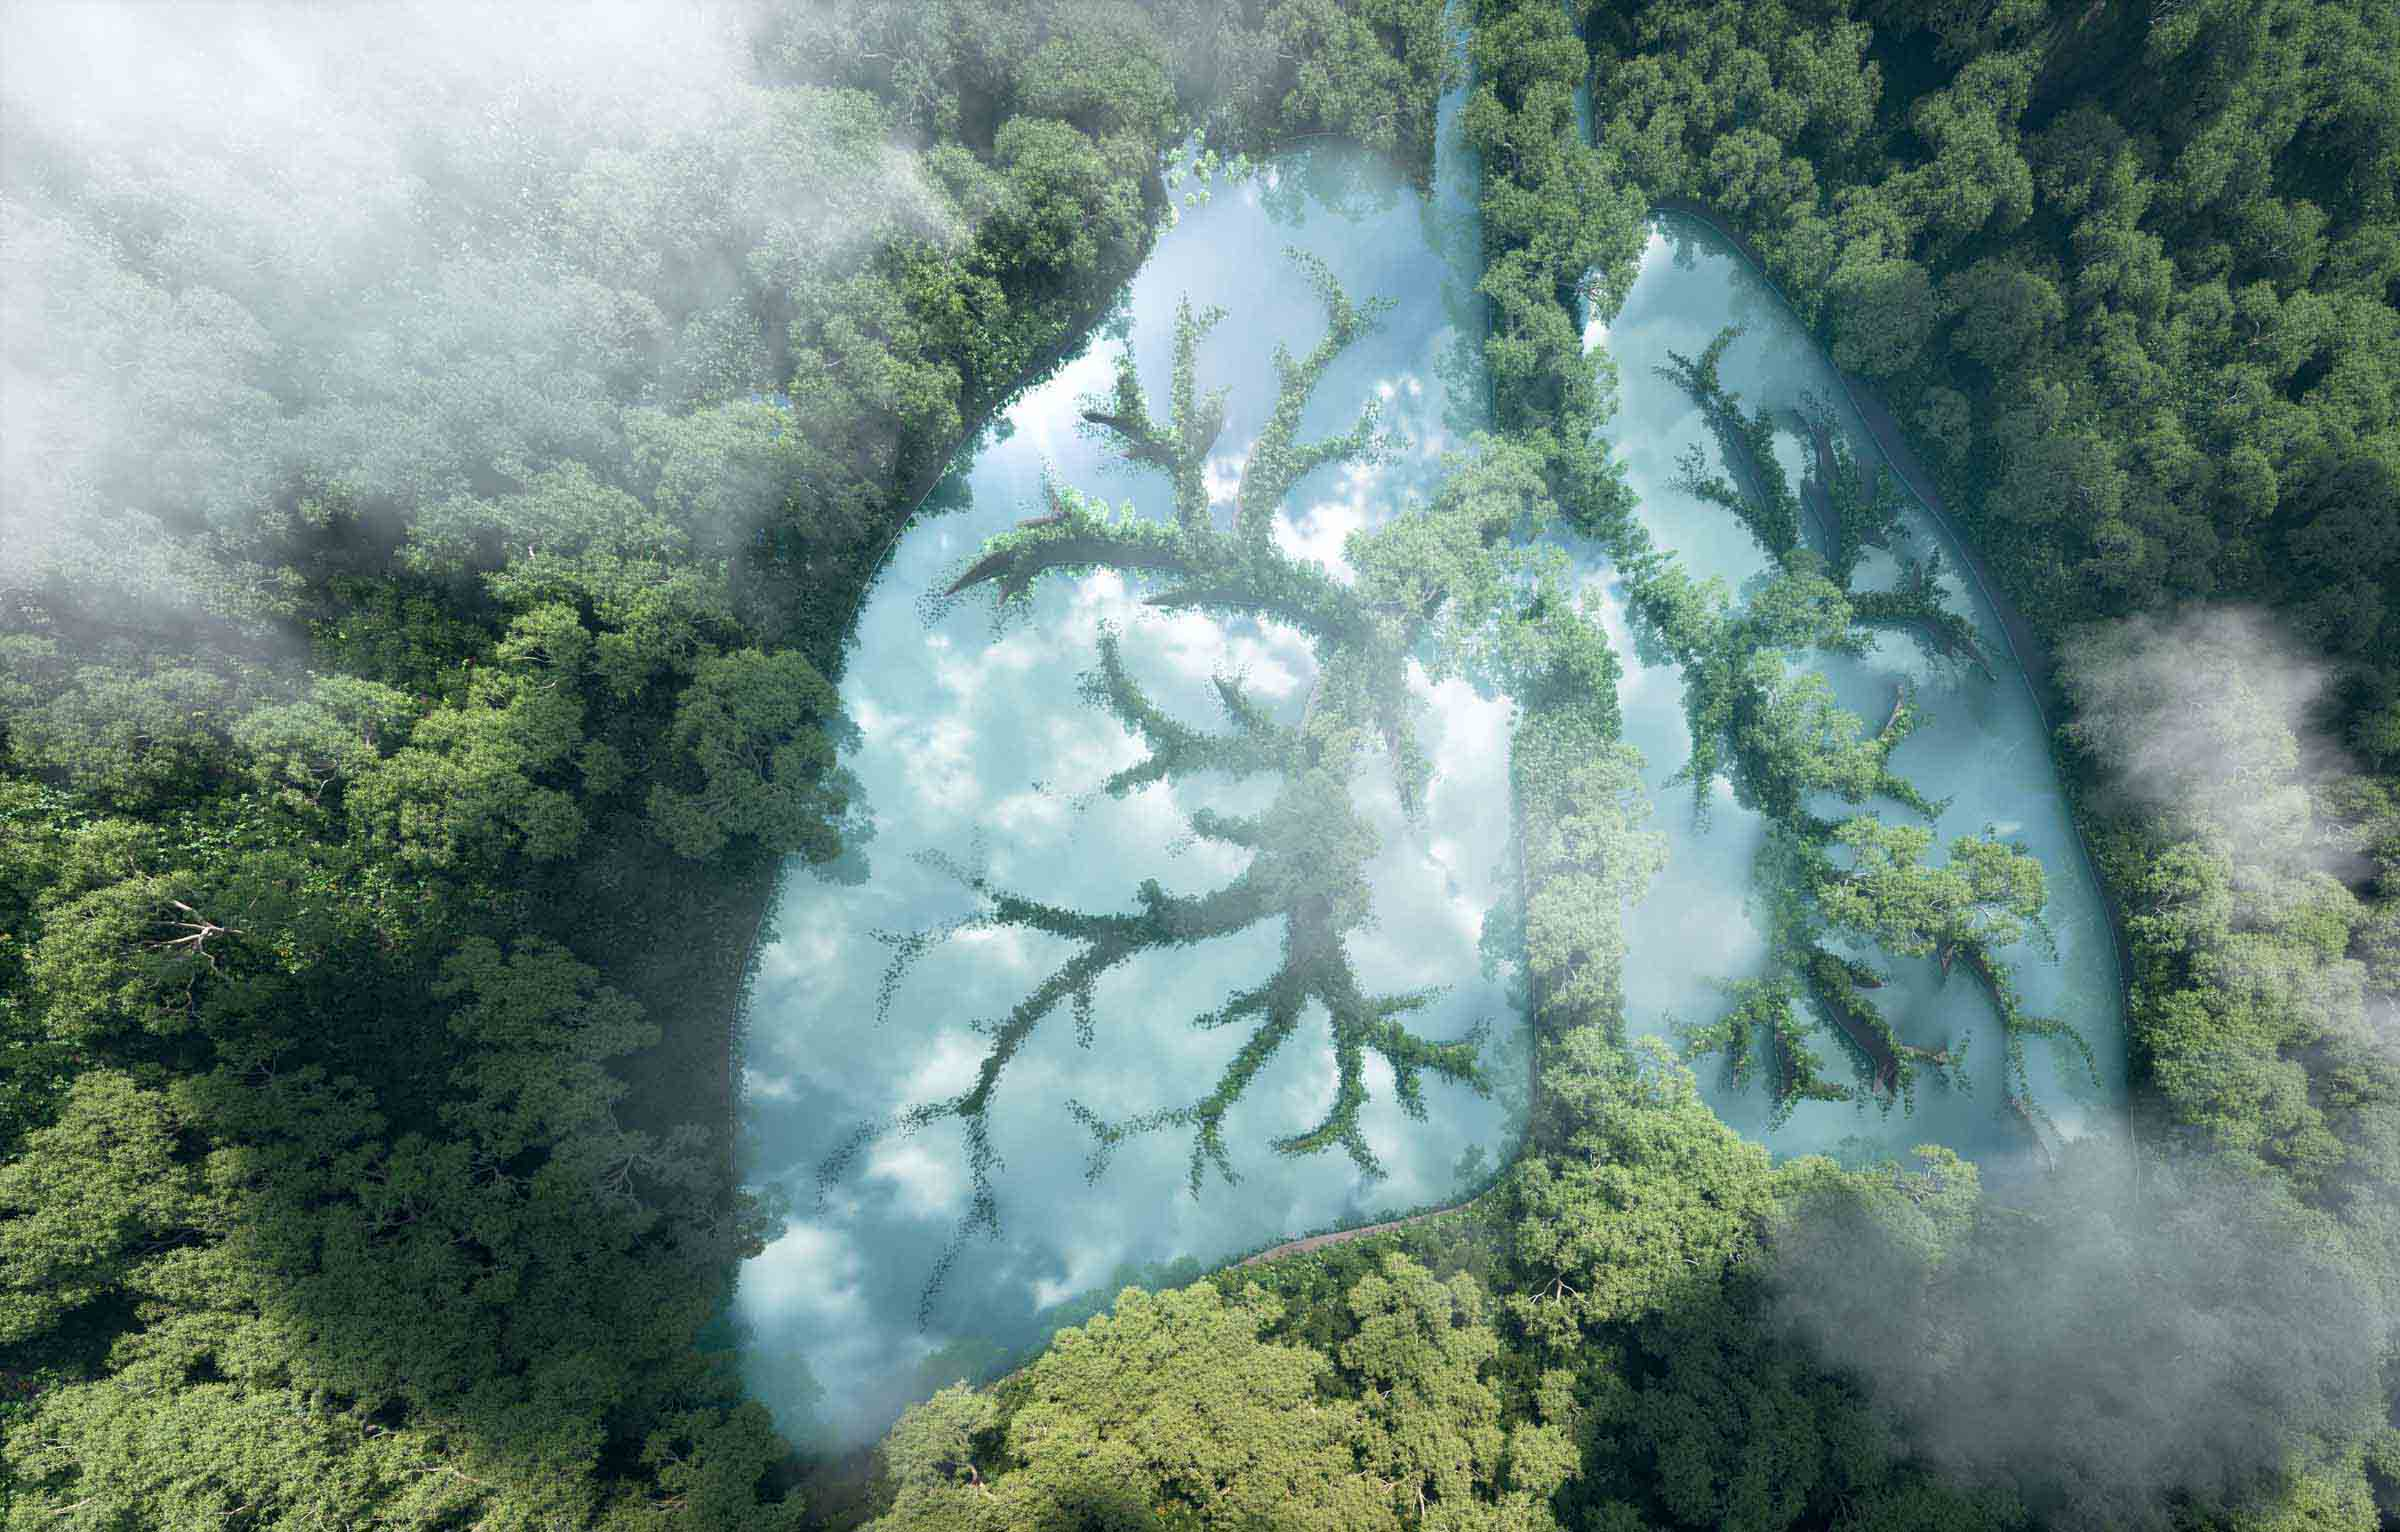 A picture looking down on a forest seeing clouds and a lake in the shape of lungs with green growth moving over the lake like blood vessels on your lungs